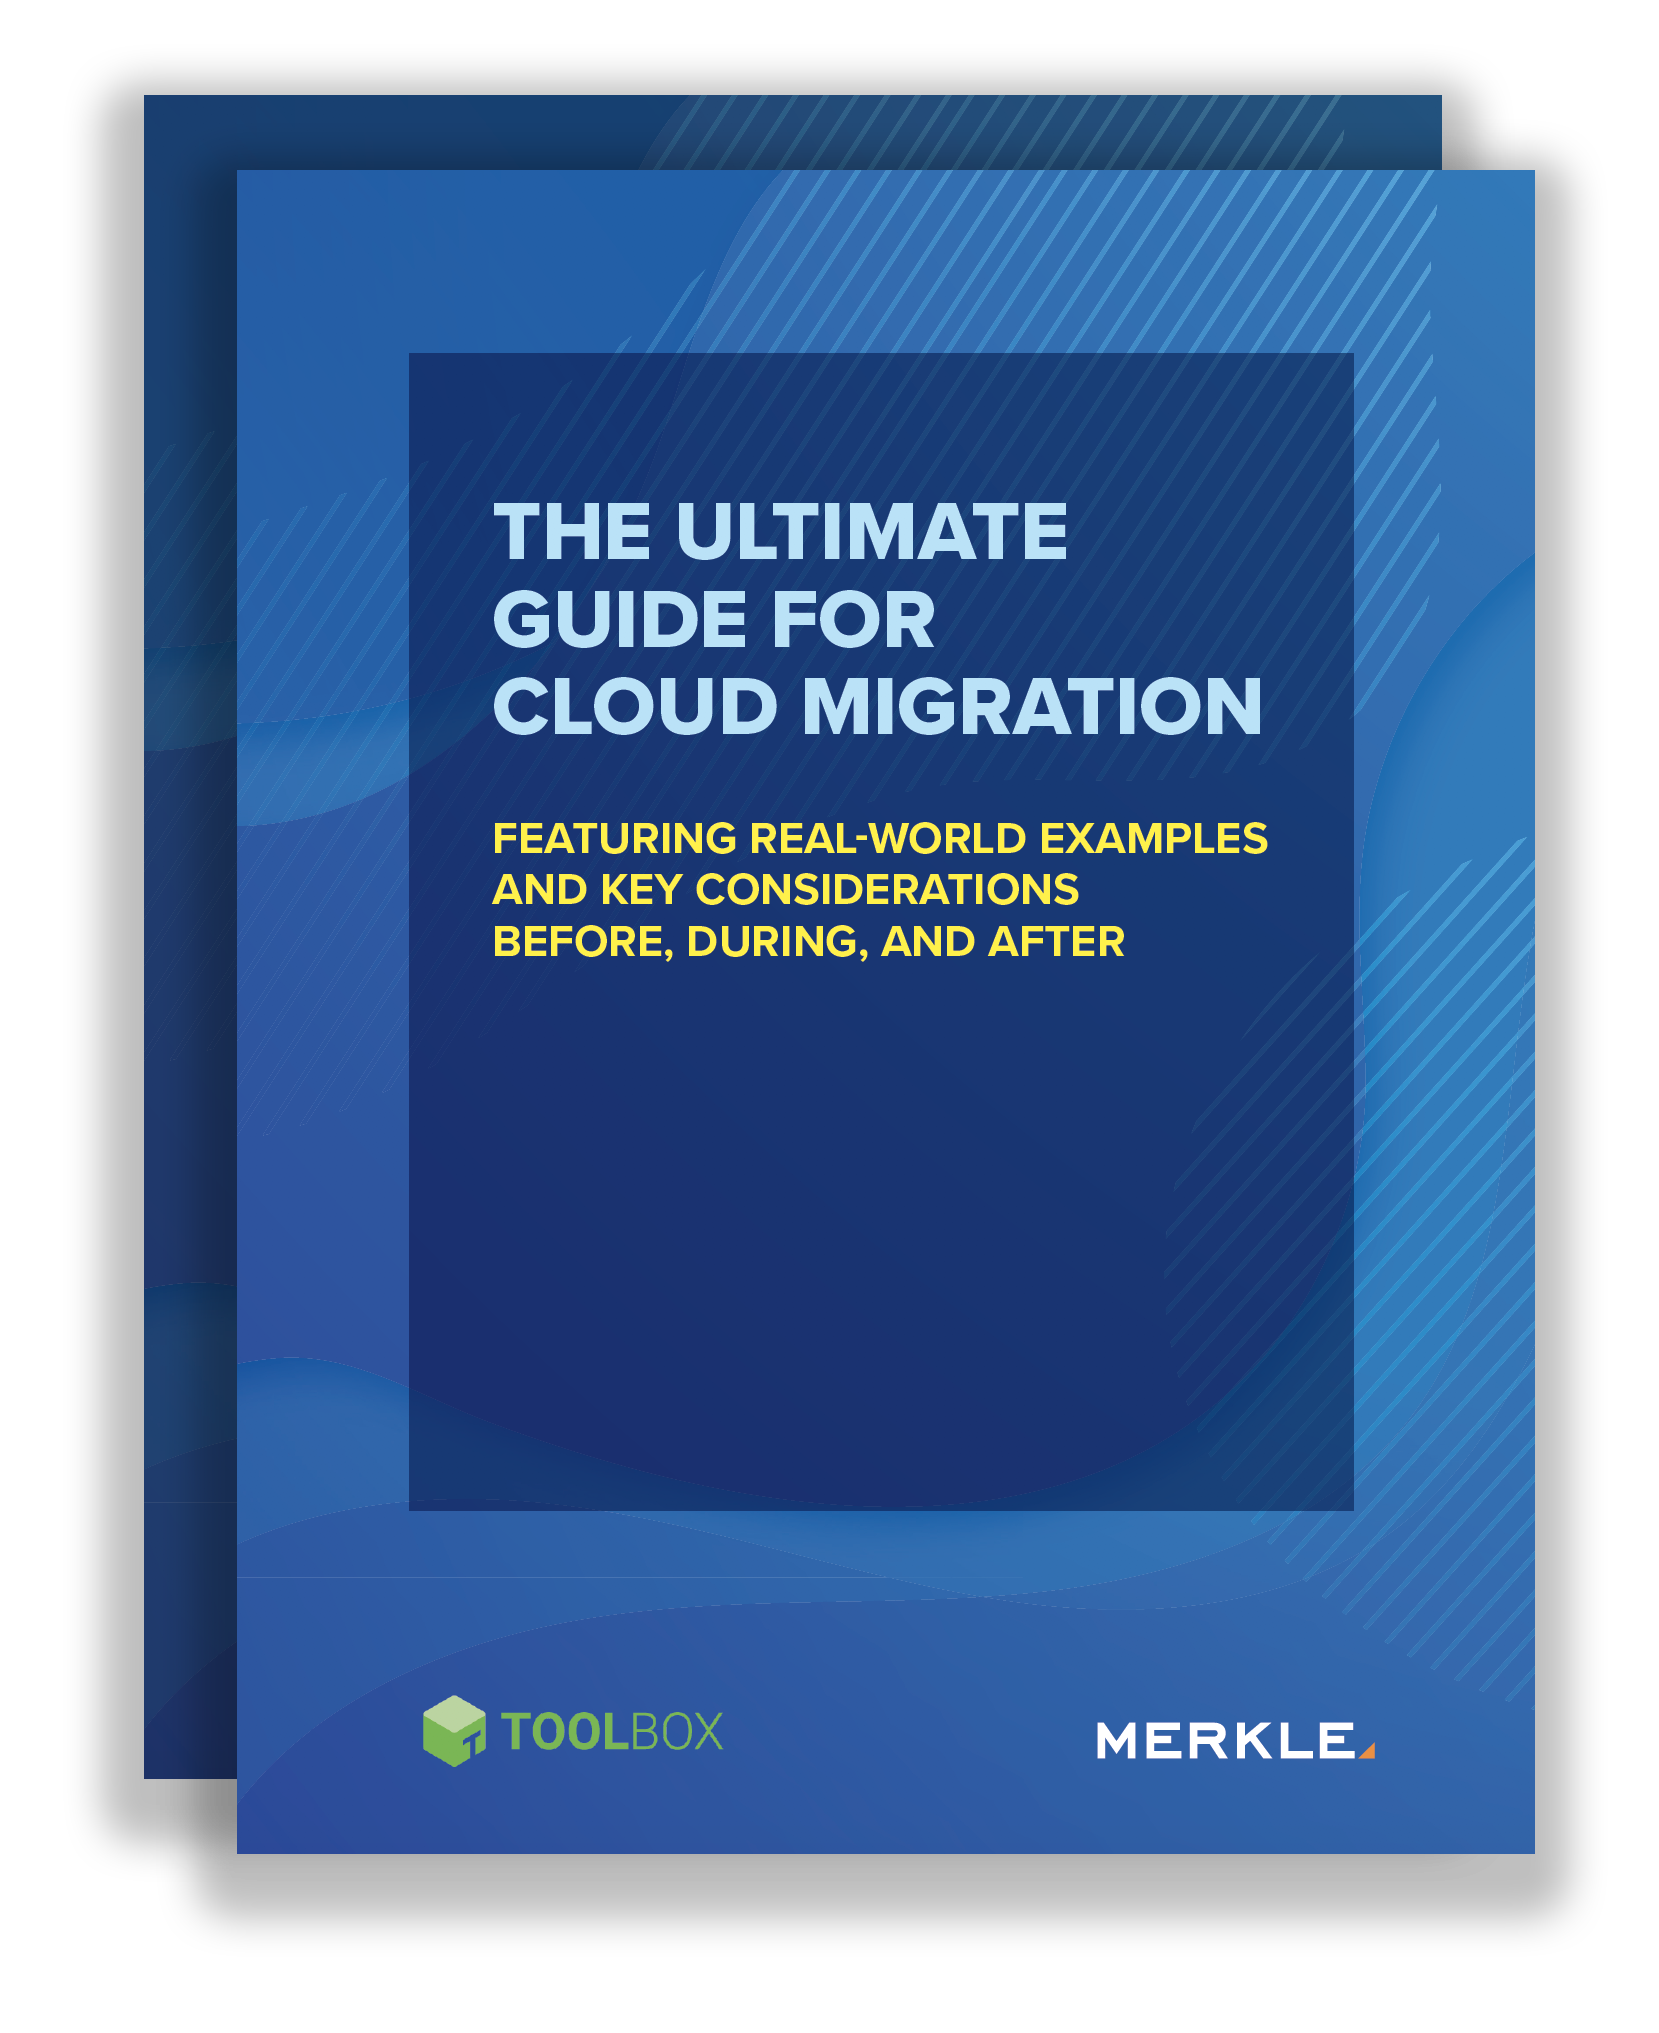 The Ultimate Guide for Cloud Migration